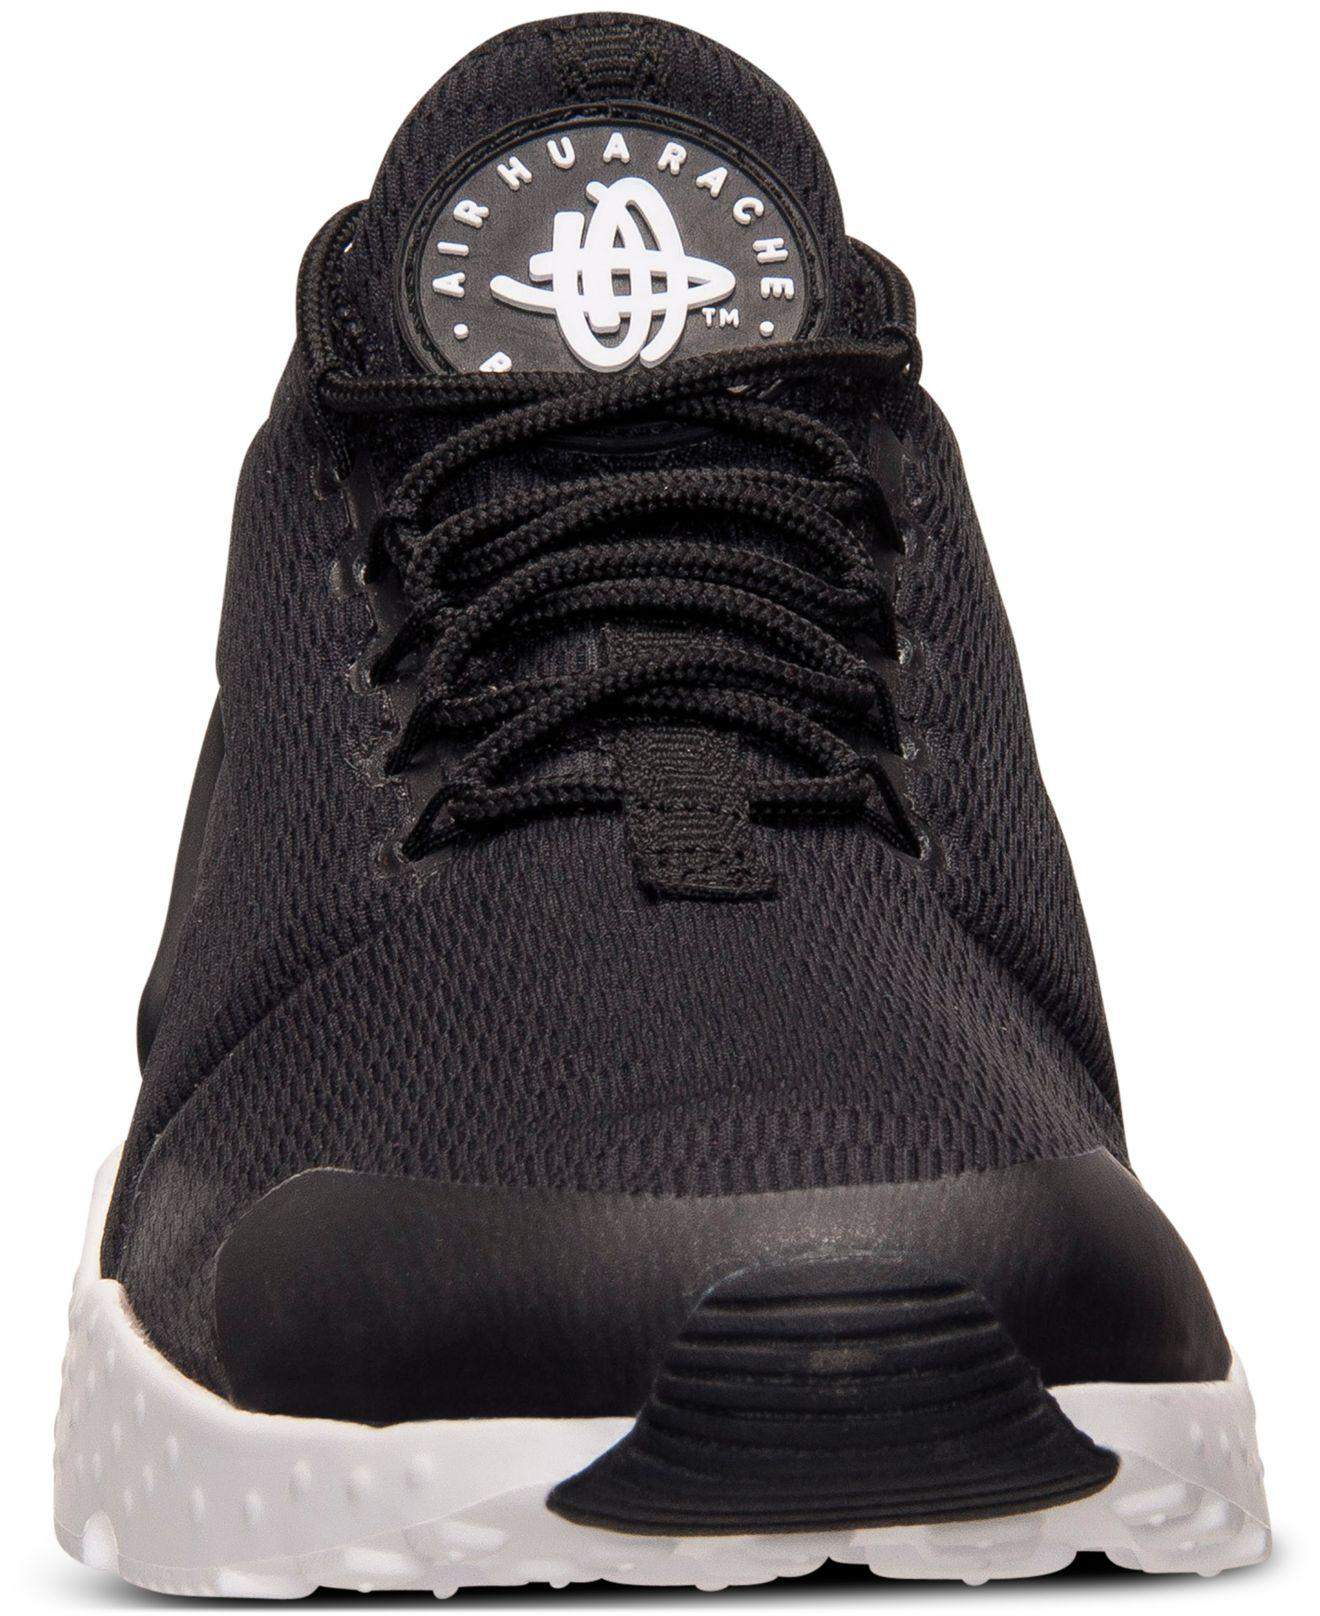 243b1a2cdcff italy nike air max stutter step basketball shoes 2a484 60b2a  low price  gallery. previously sold at macys macys mens nike huarache 11a63 e35a4